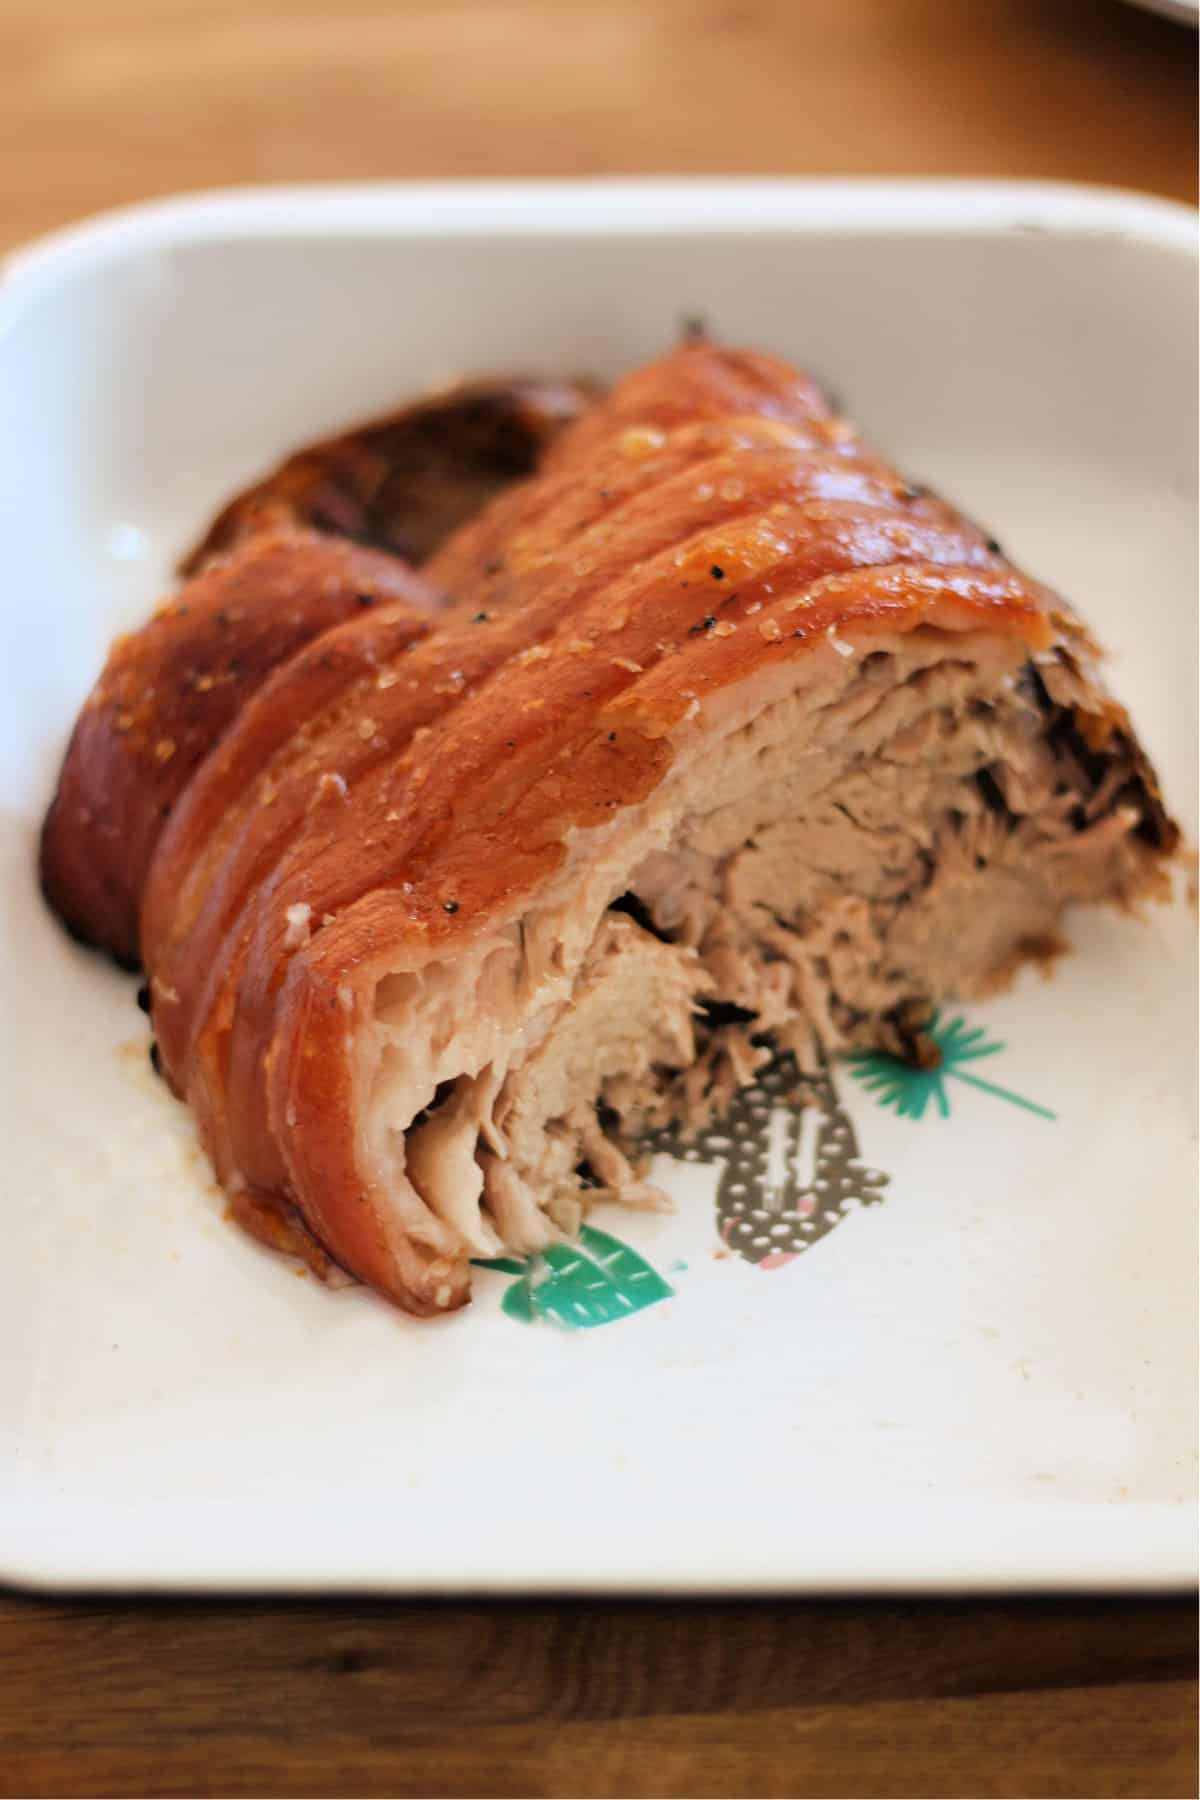 Roast pork joint in a serving dish, showing the soft meat inside.